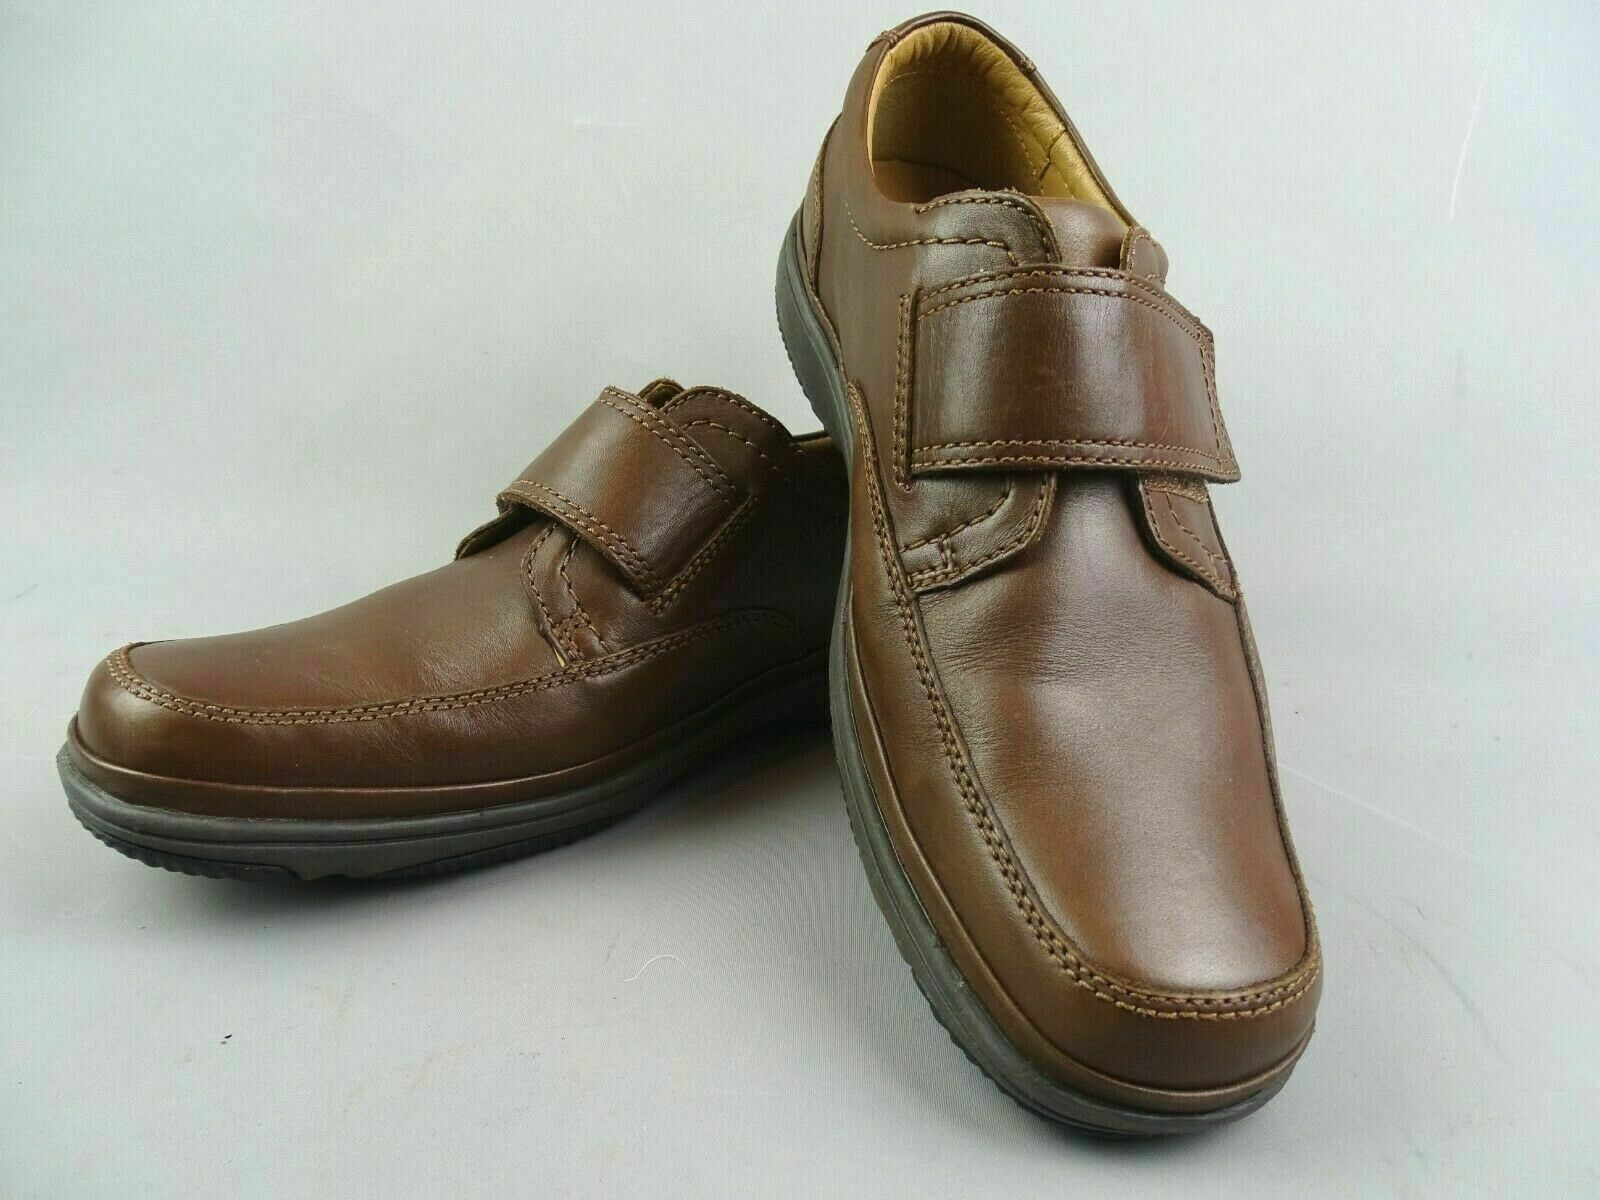 etica Facile da capire Bagaglio  Clarks Swift Turn Brown Leather Mens Shoes 11 UK 5051041681906 for sale |  eBay